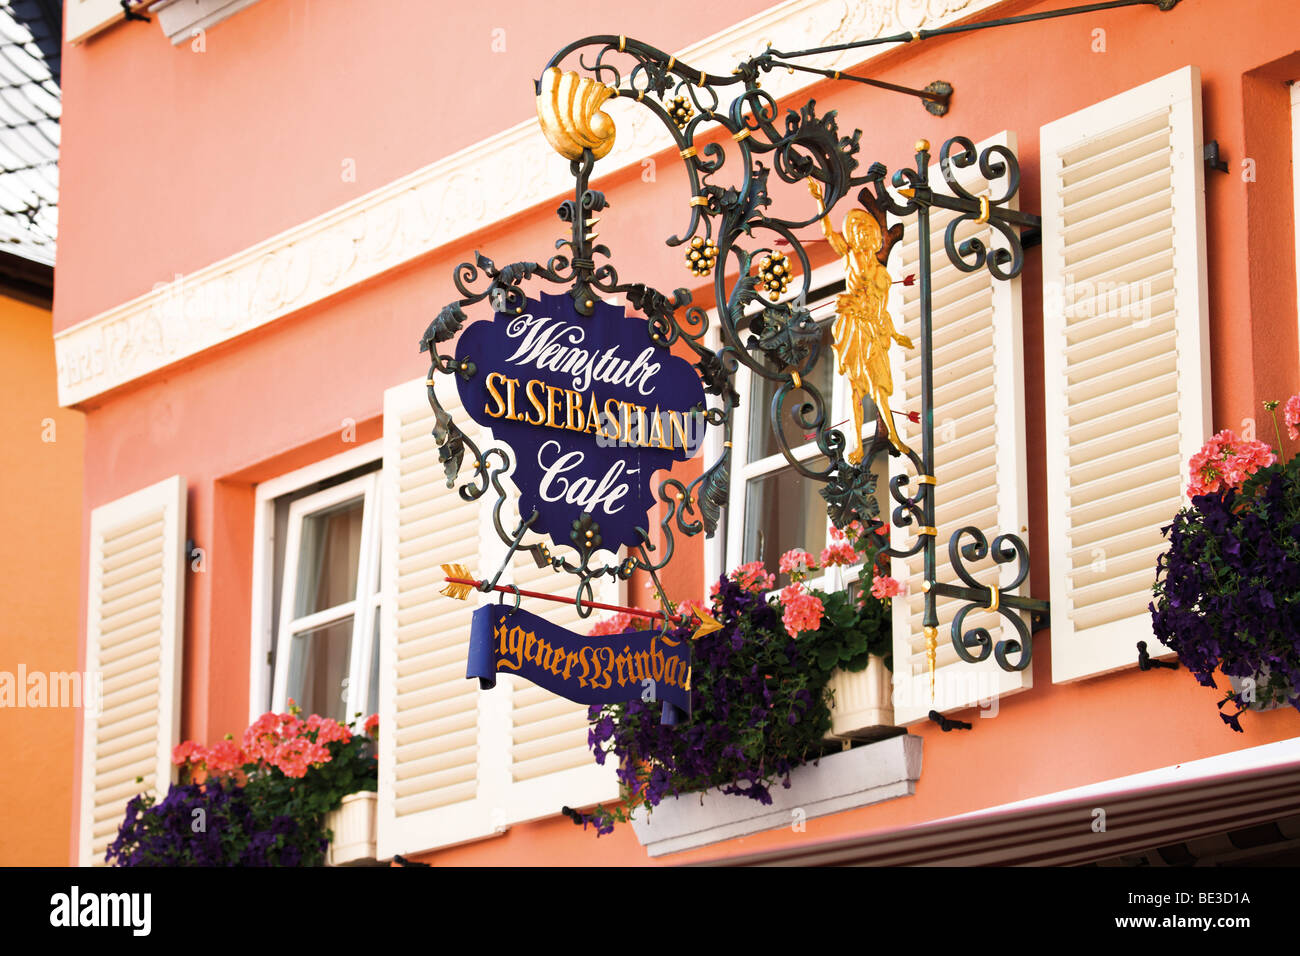 Inn sign in the historic centre of Bernkastel-Kues, on Moselle River, Rhineland-Palatinate, Germany, Europe - Stock Image